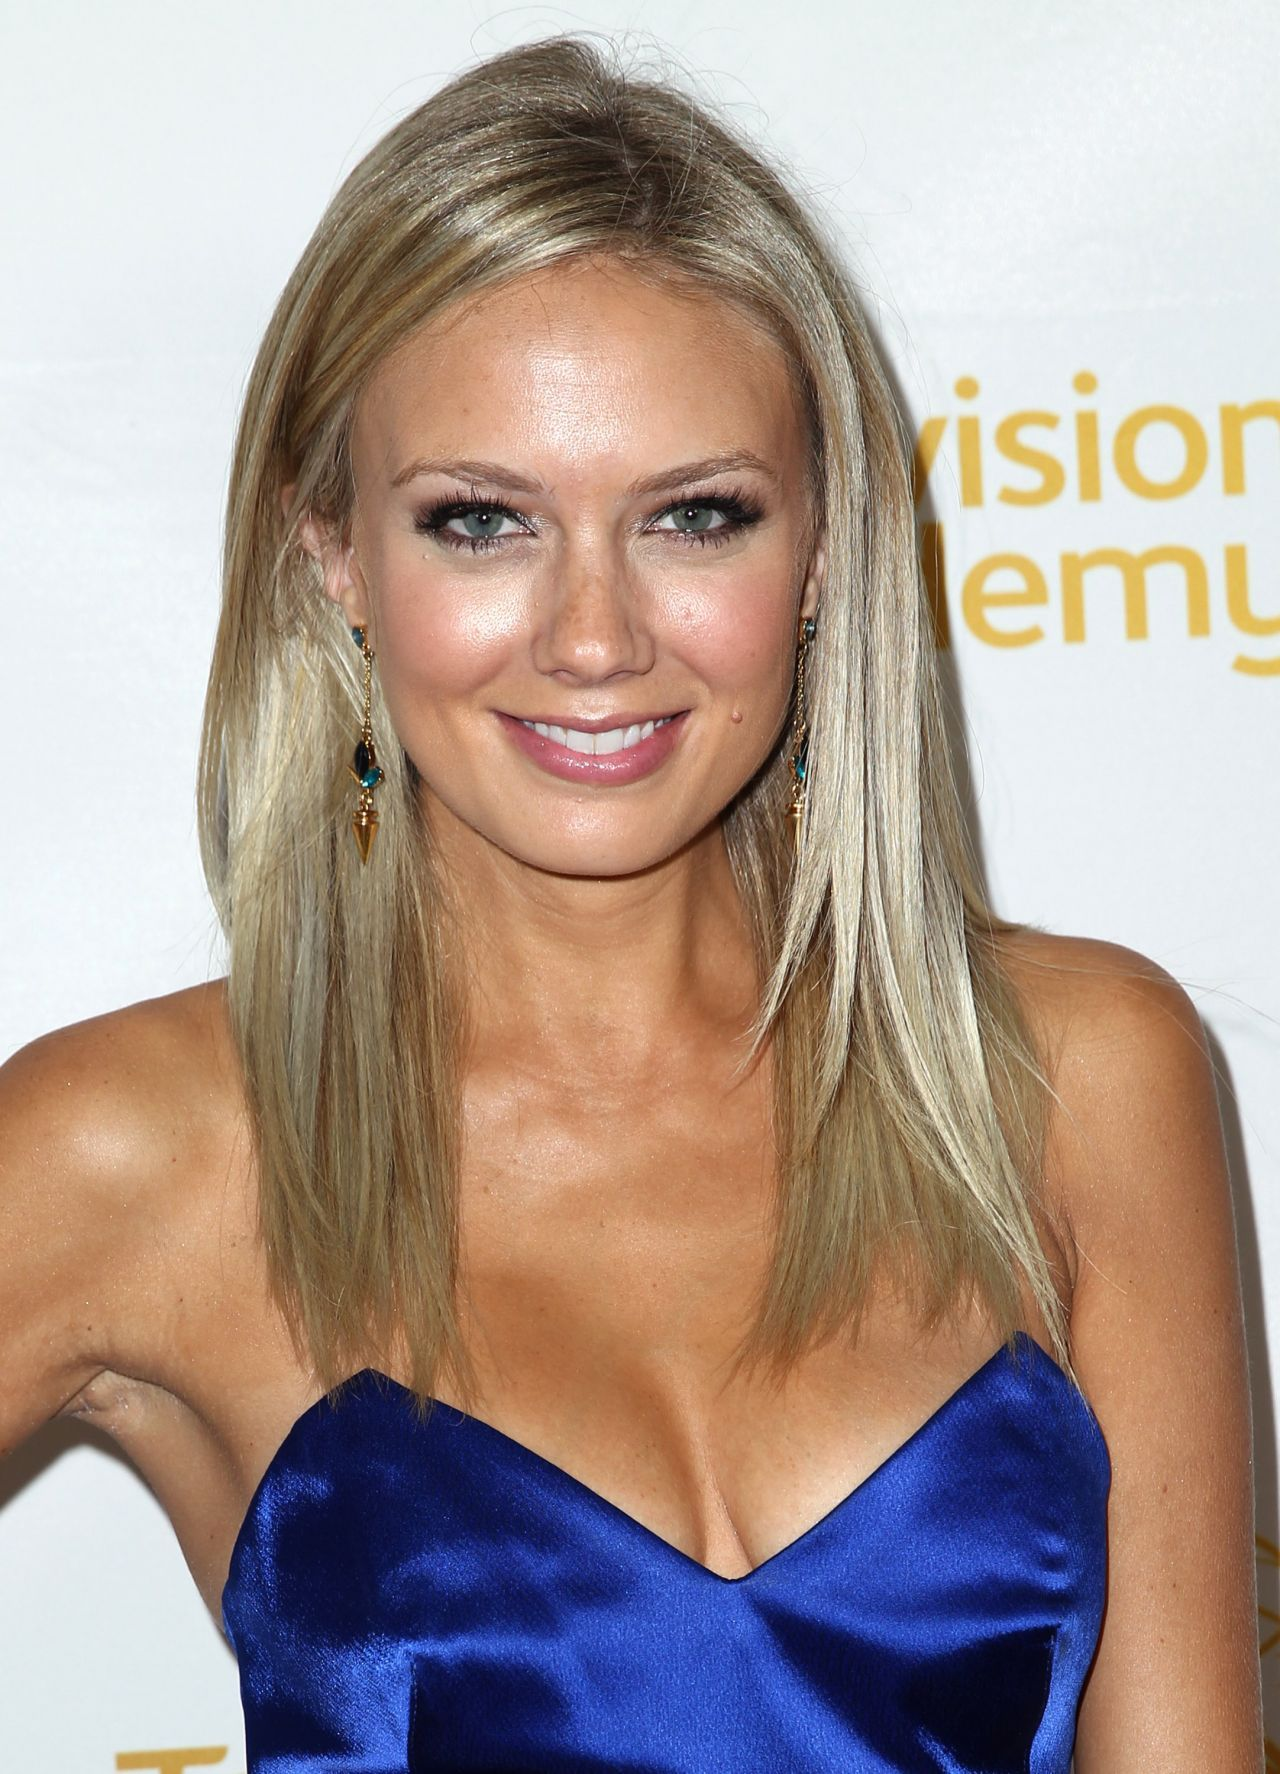 Melissa ordway sexy lips images 556